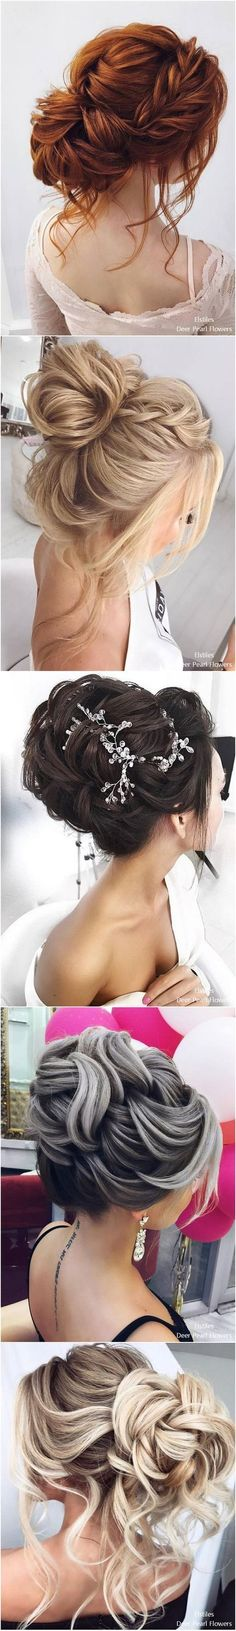 Wedding hairstyle inspiration for long hair up-dos #diyhairstylesupdo